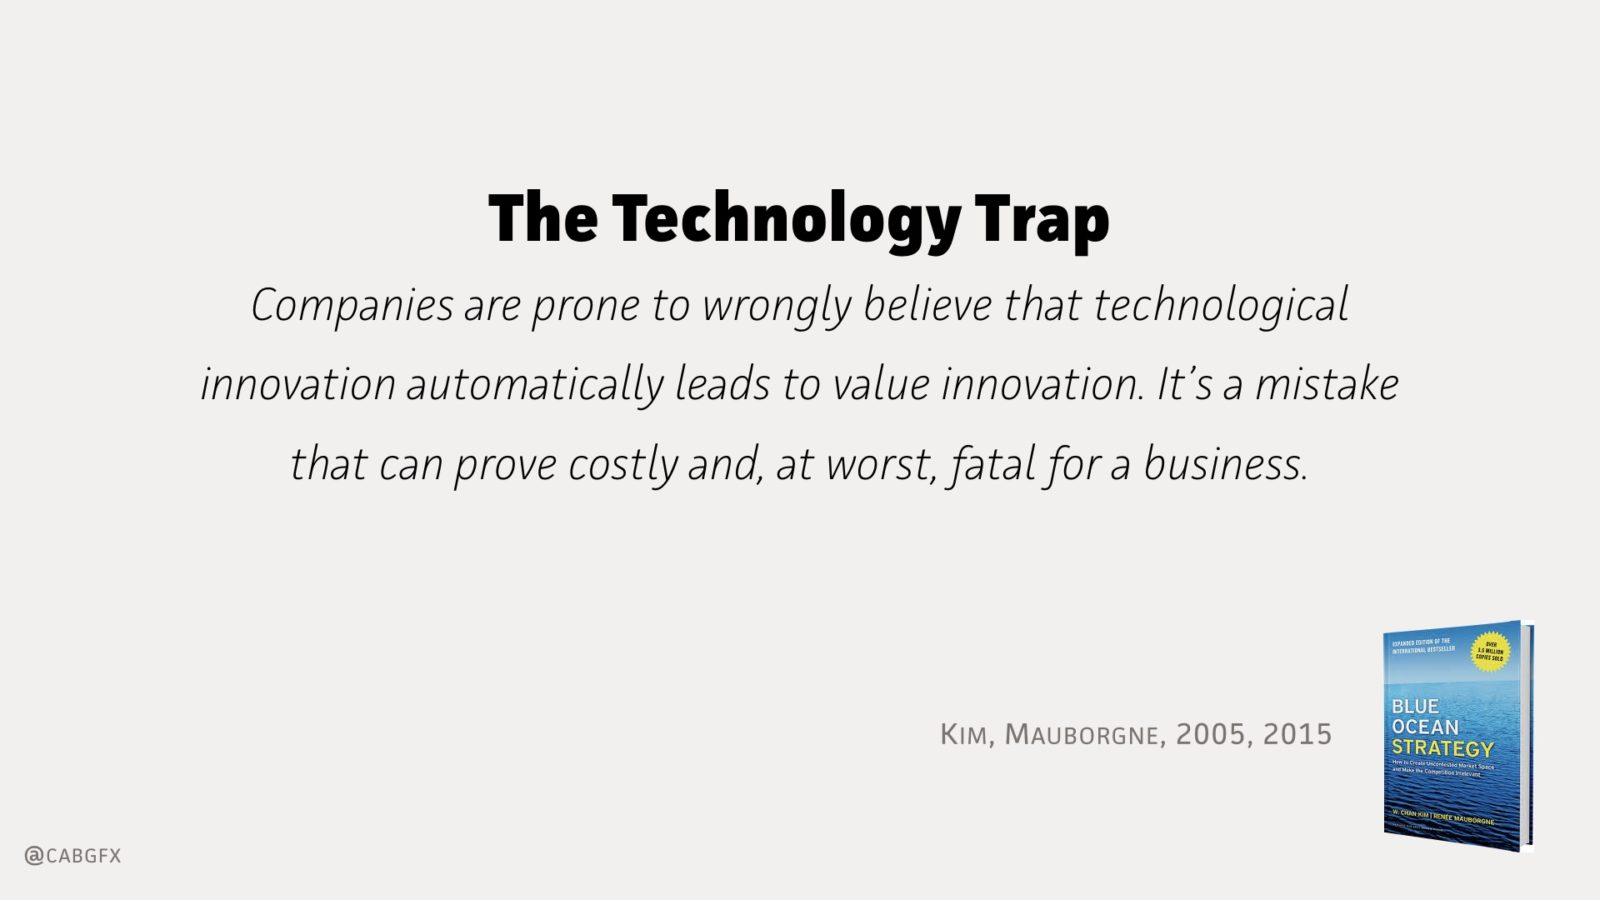 The Technology Trap - Kim, Mauborgne, 2005